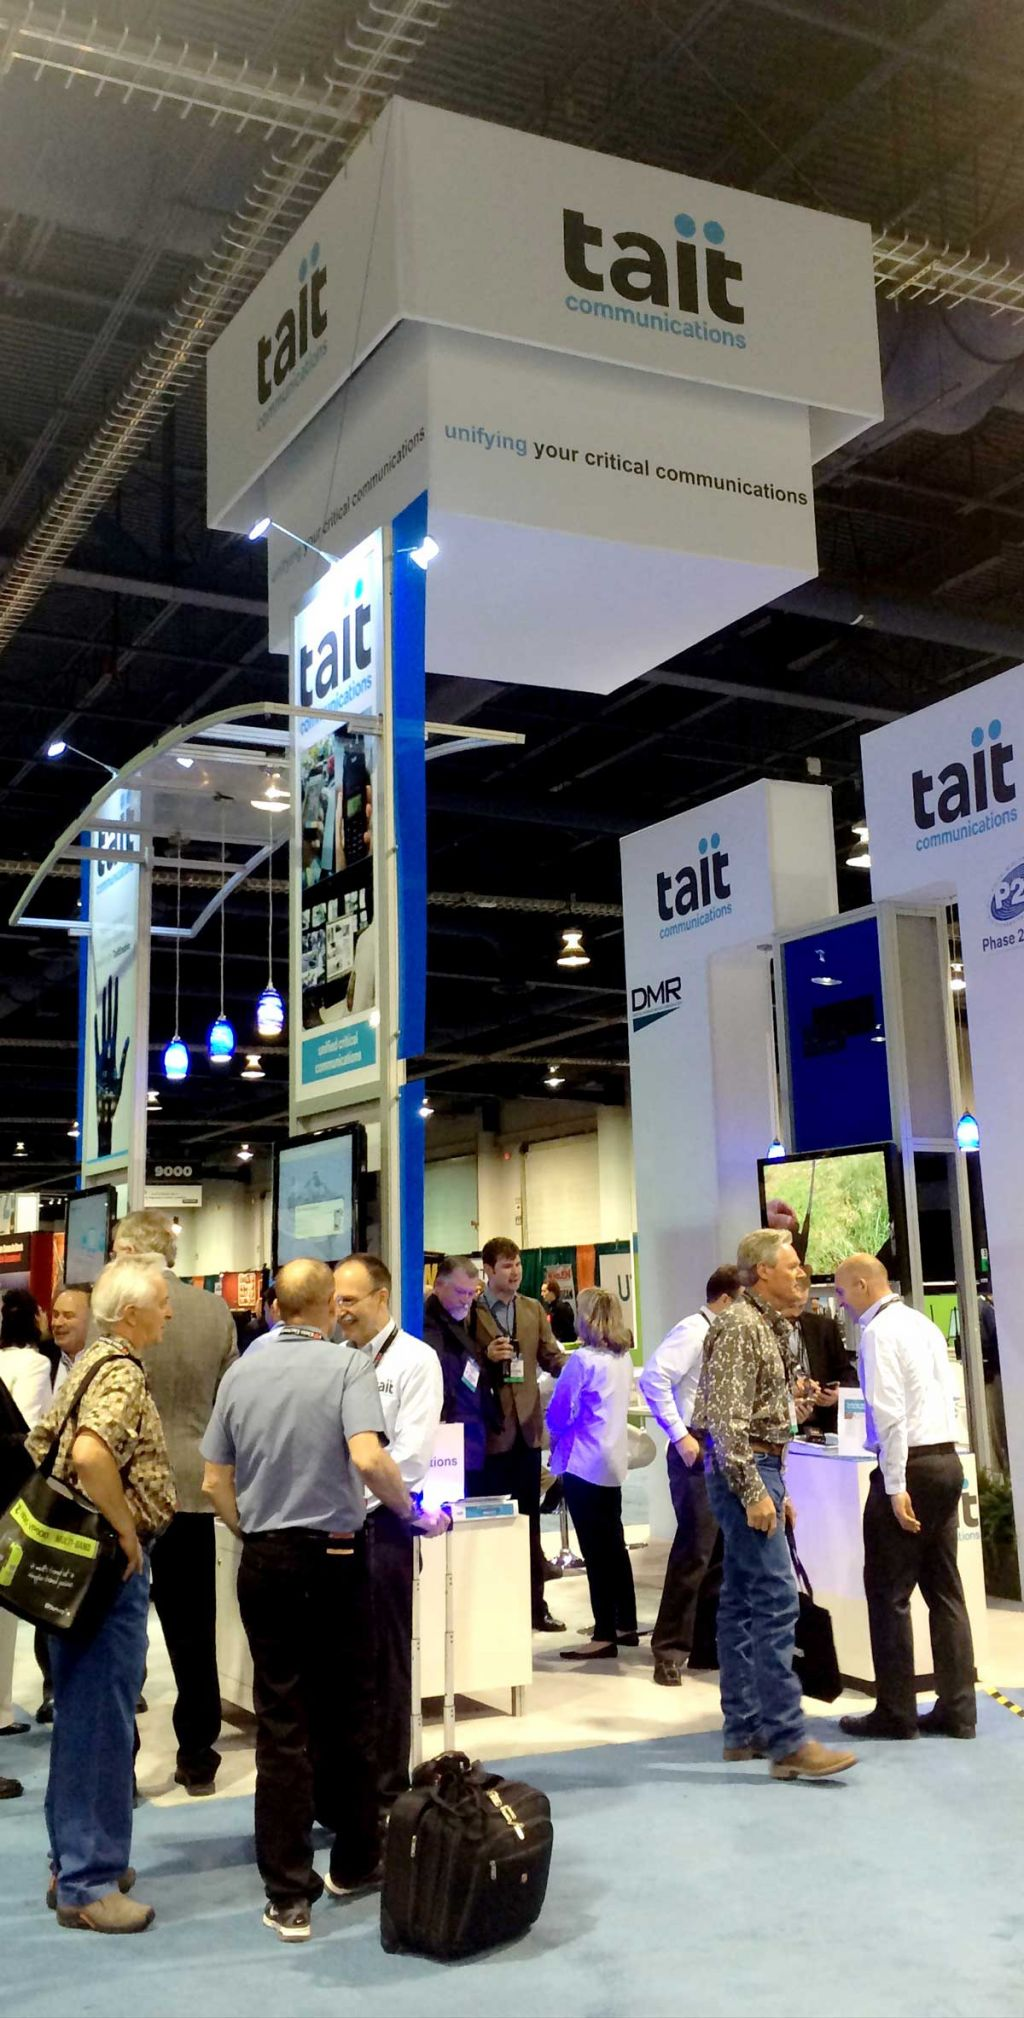 Pro Expo Communication Stands Amp Events : Iwce international wireless communication expo